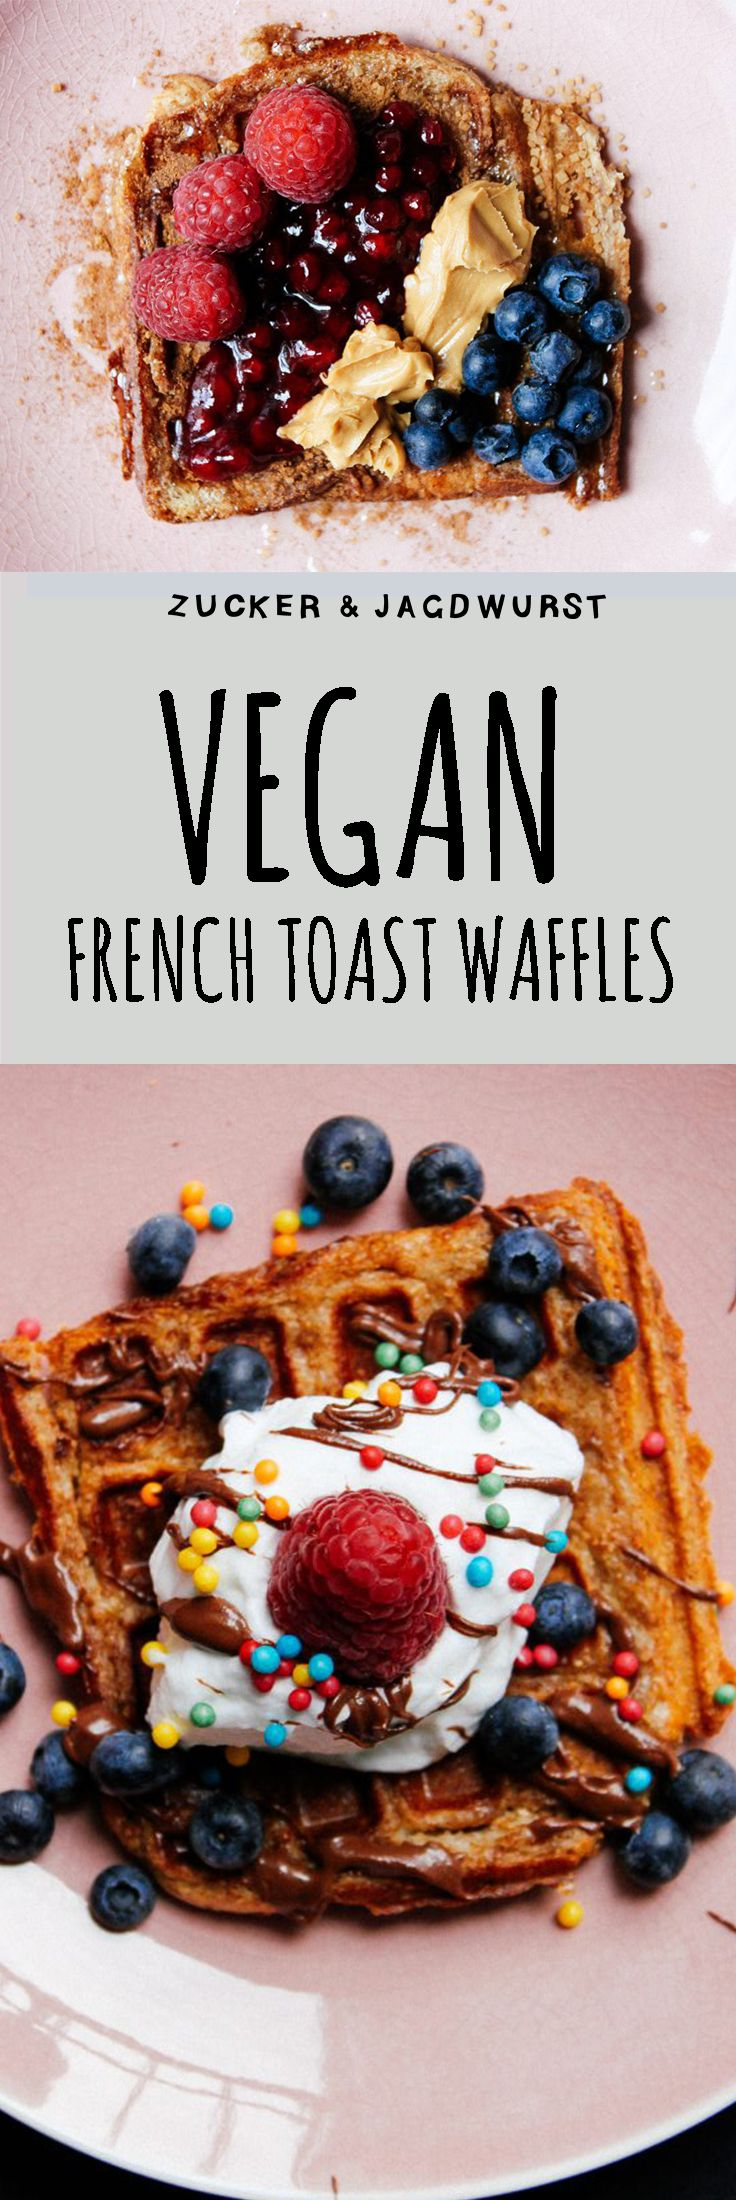 Time for vegan Breakfast: Vegan French Toast Waffles with cream, berries and sprinkles